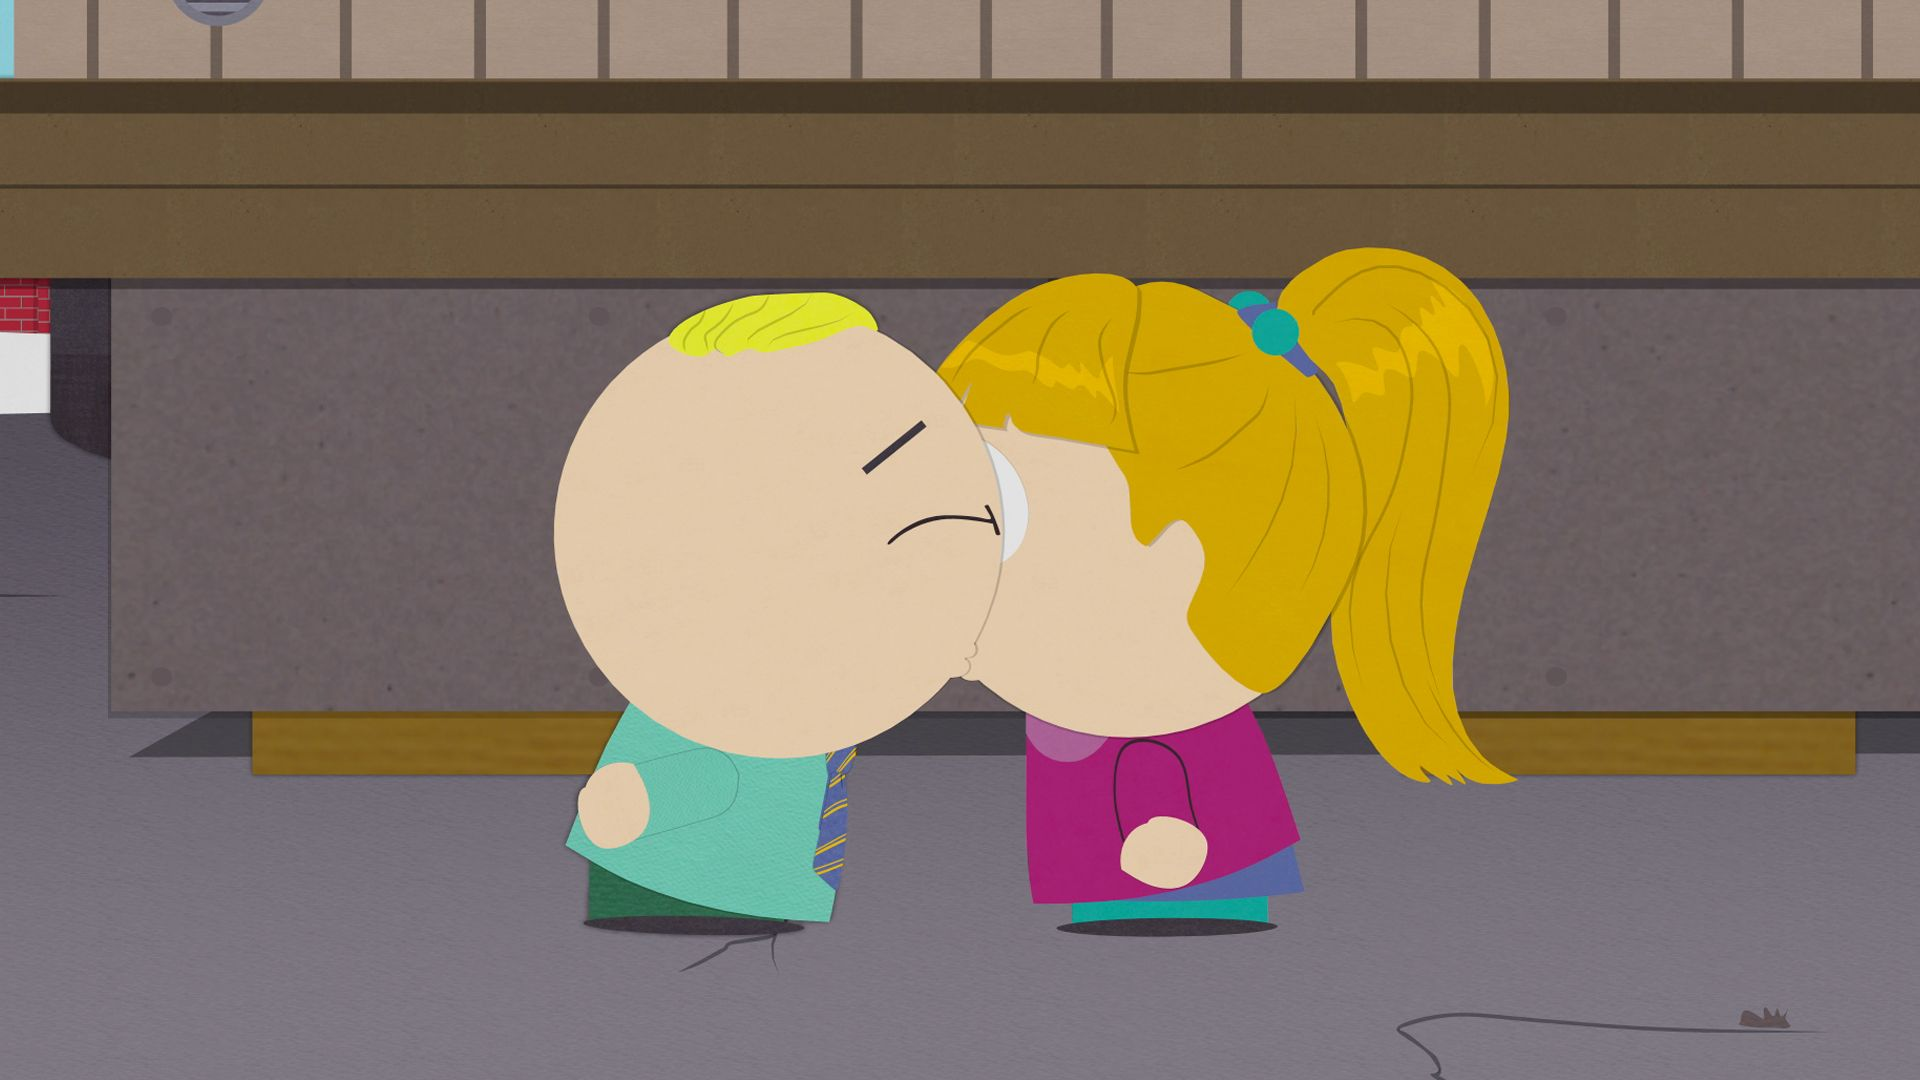 Go Get Some (Season 13 - episode 9 - Butters Bottom Bitch)